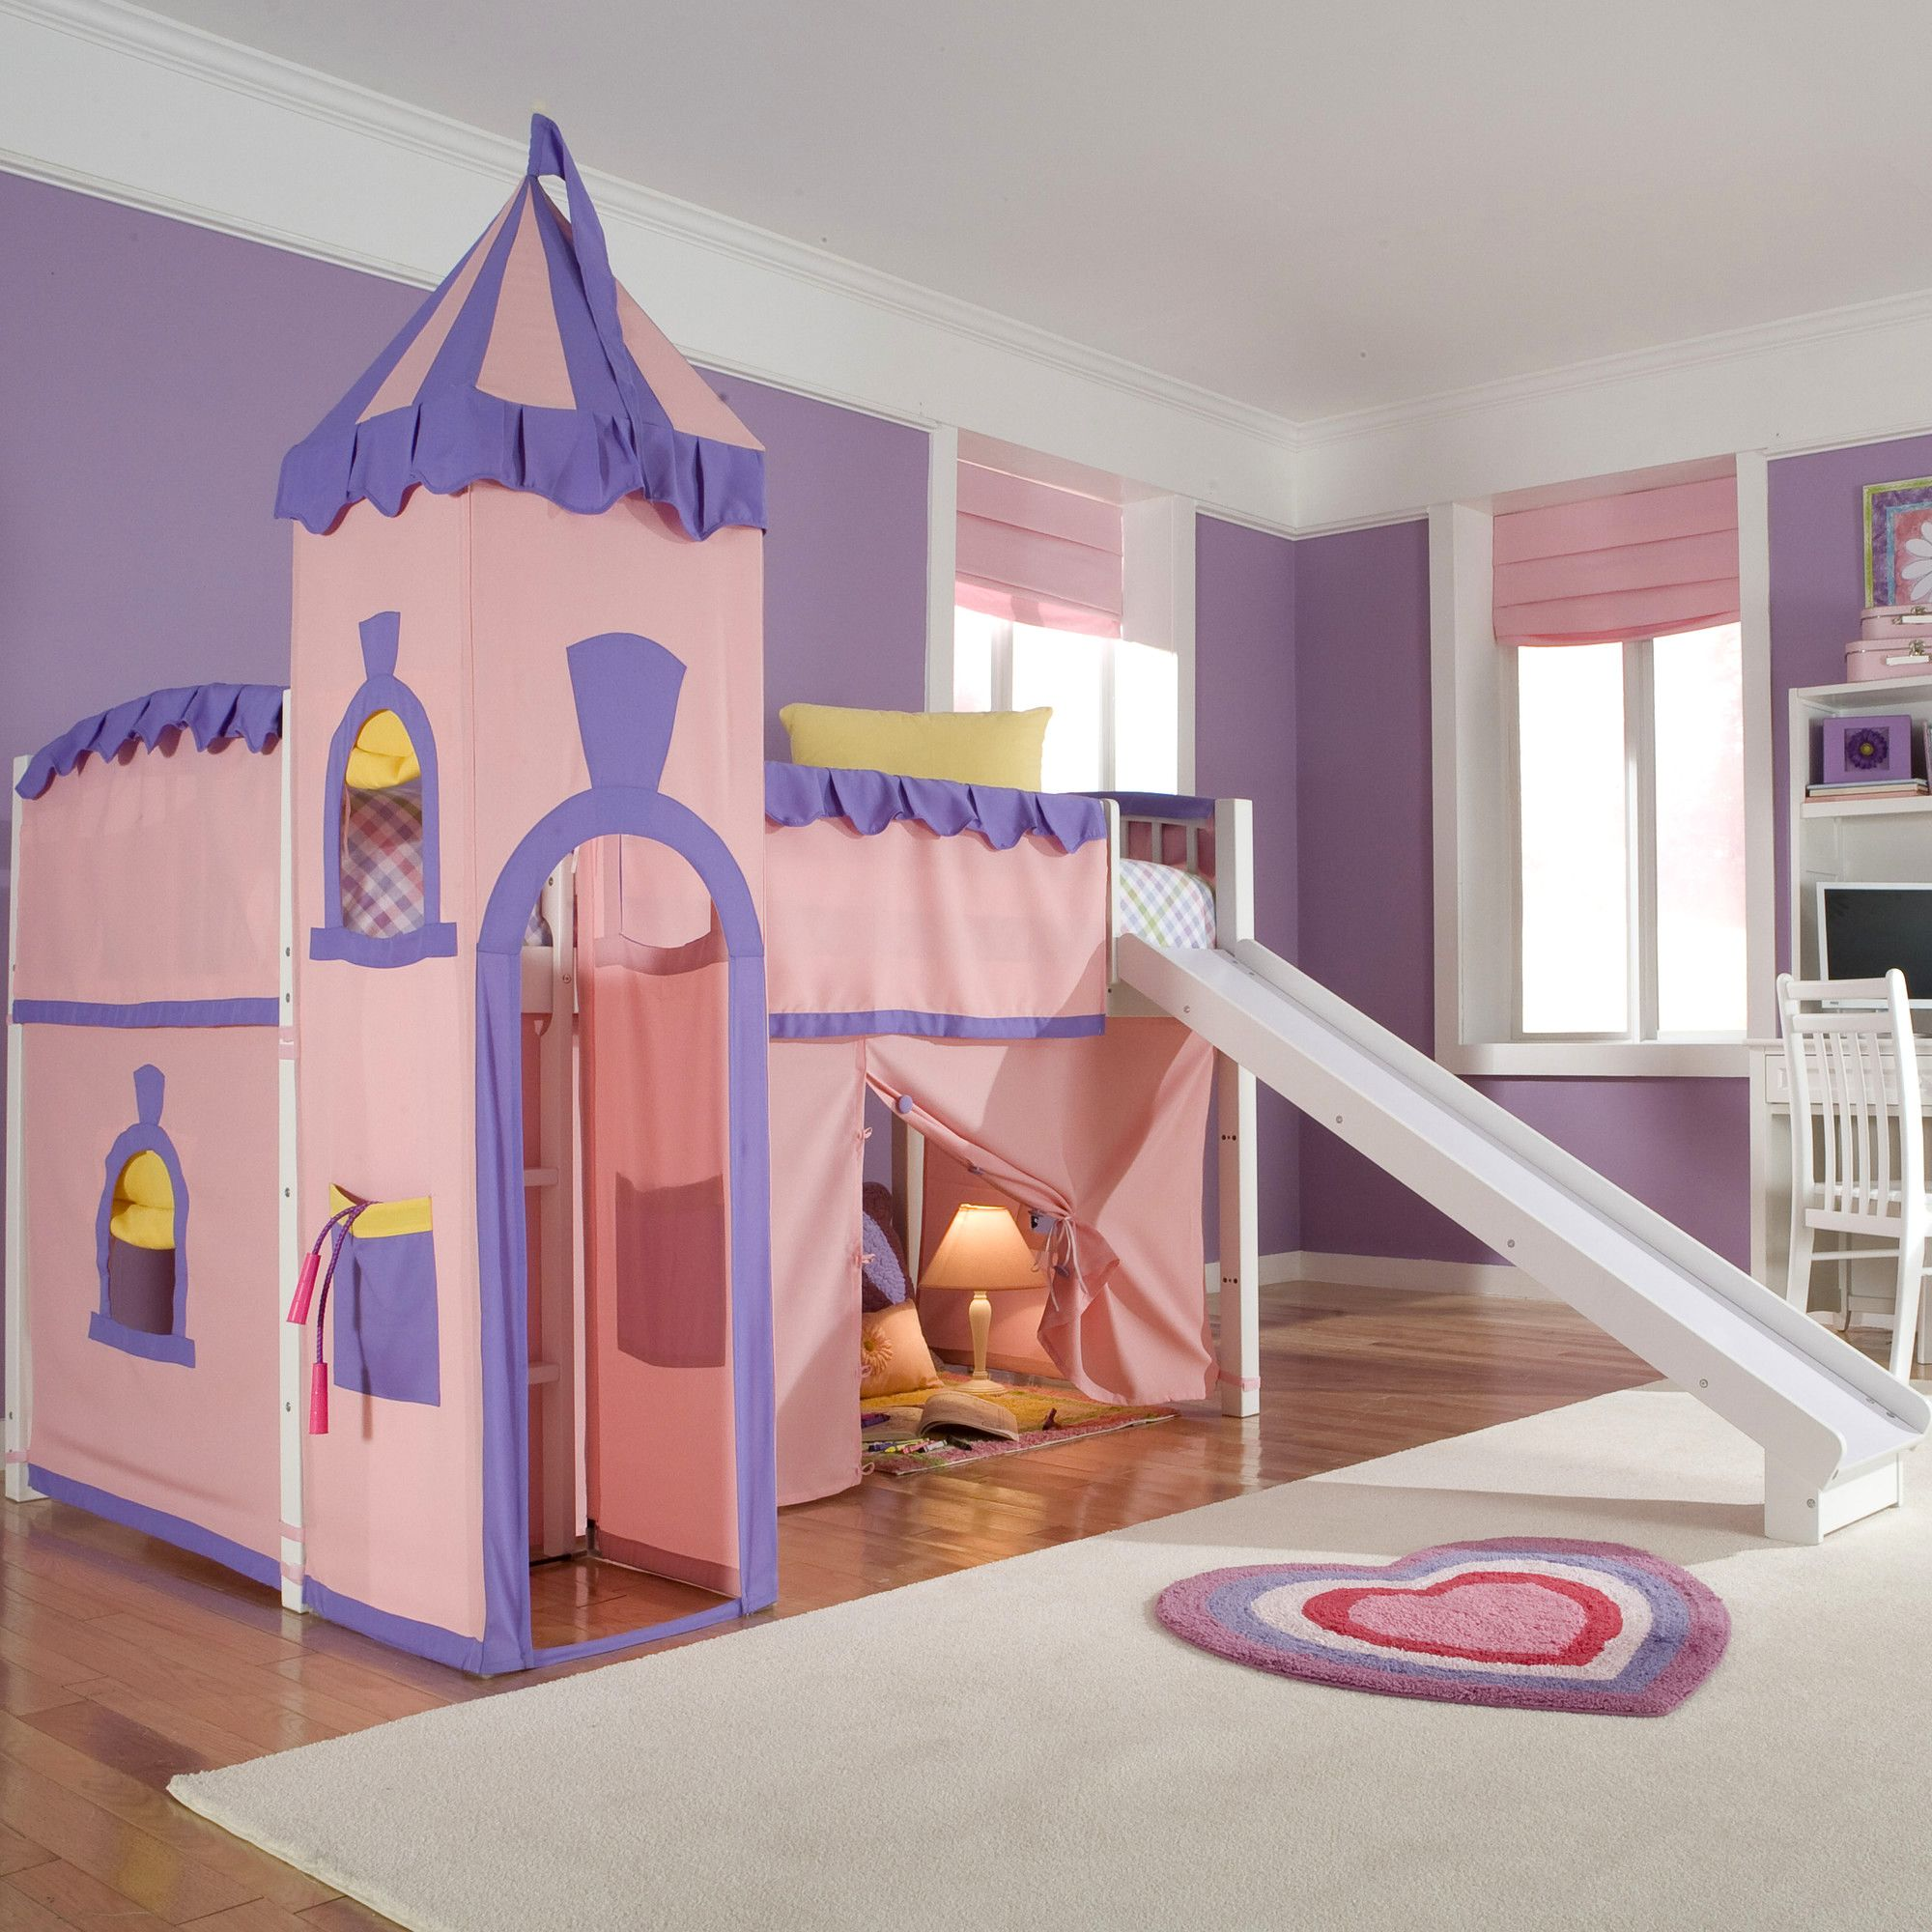 Fancy Princess Themed Castle Loft Bed Decoration Idea for Kids Girl